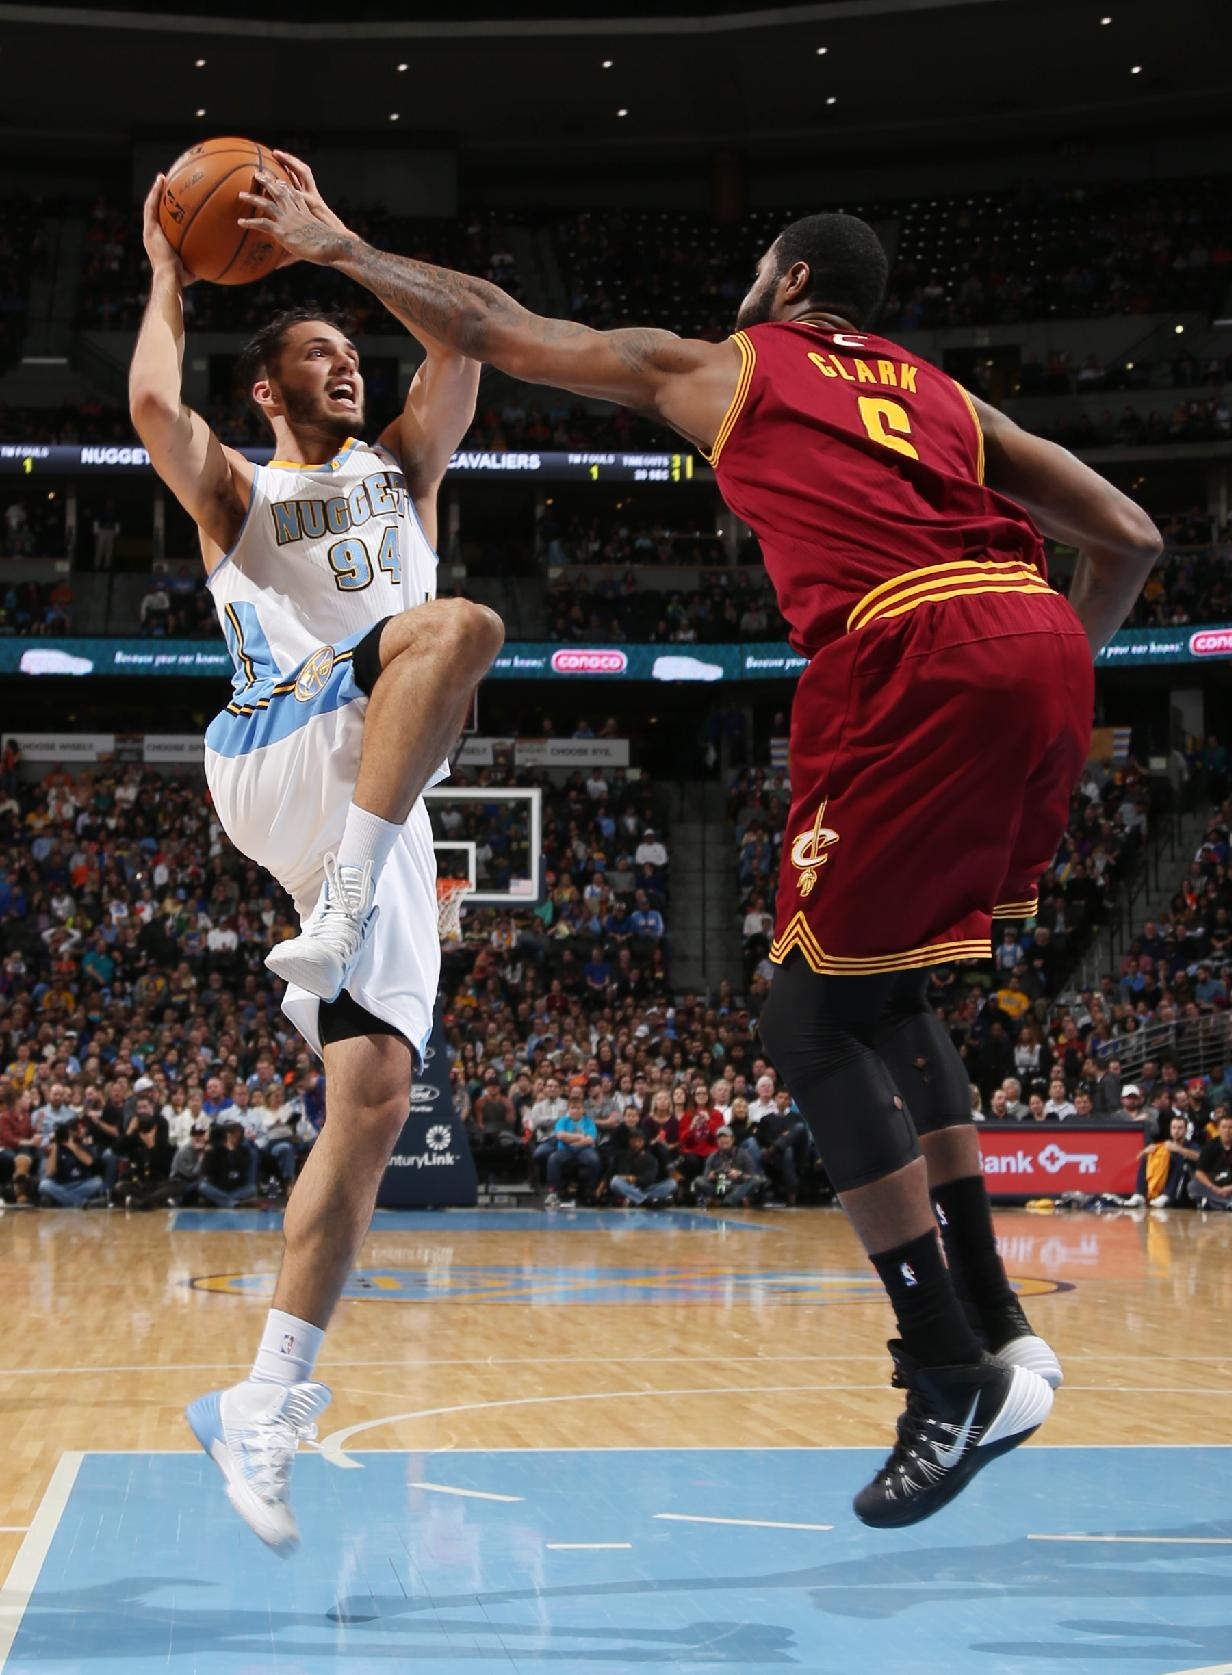 Denver Nuggets guard Evan Fournier, left, of France, his his shot blocked by Cleveland Cavaliers forward Earl Clark in the fourth quarter of the Cavaliers' 117-109 victory in an NBA basketball game in Denver on Friday, Jan. 17, 2014